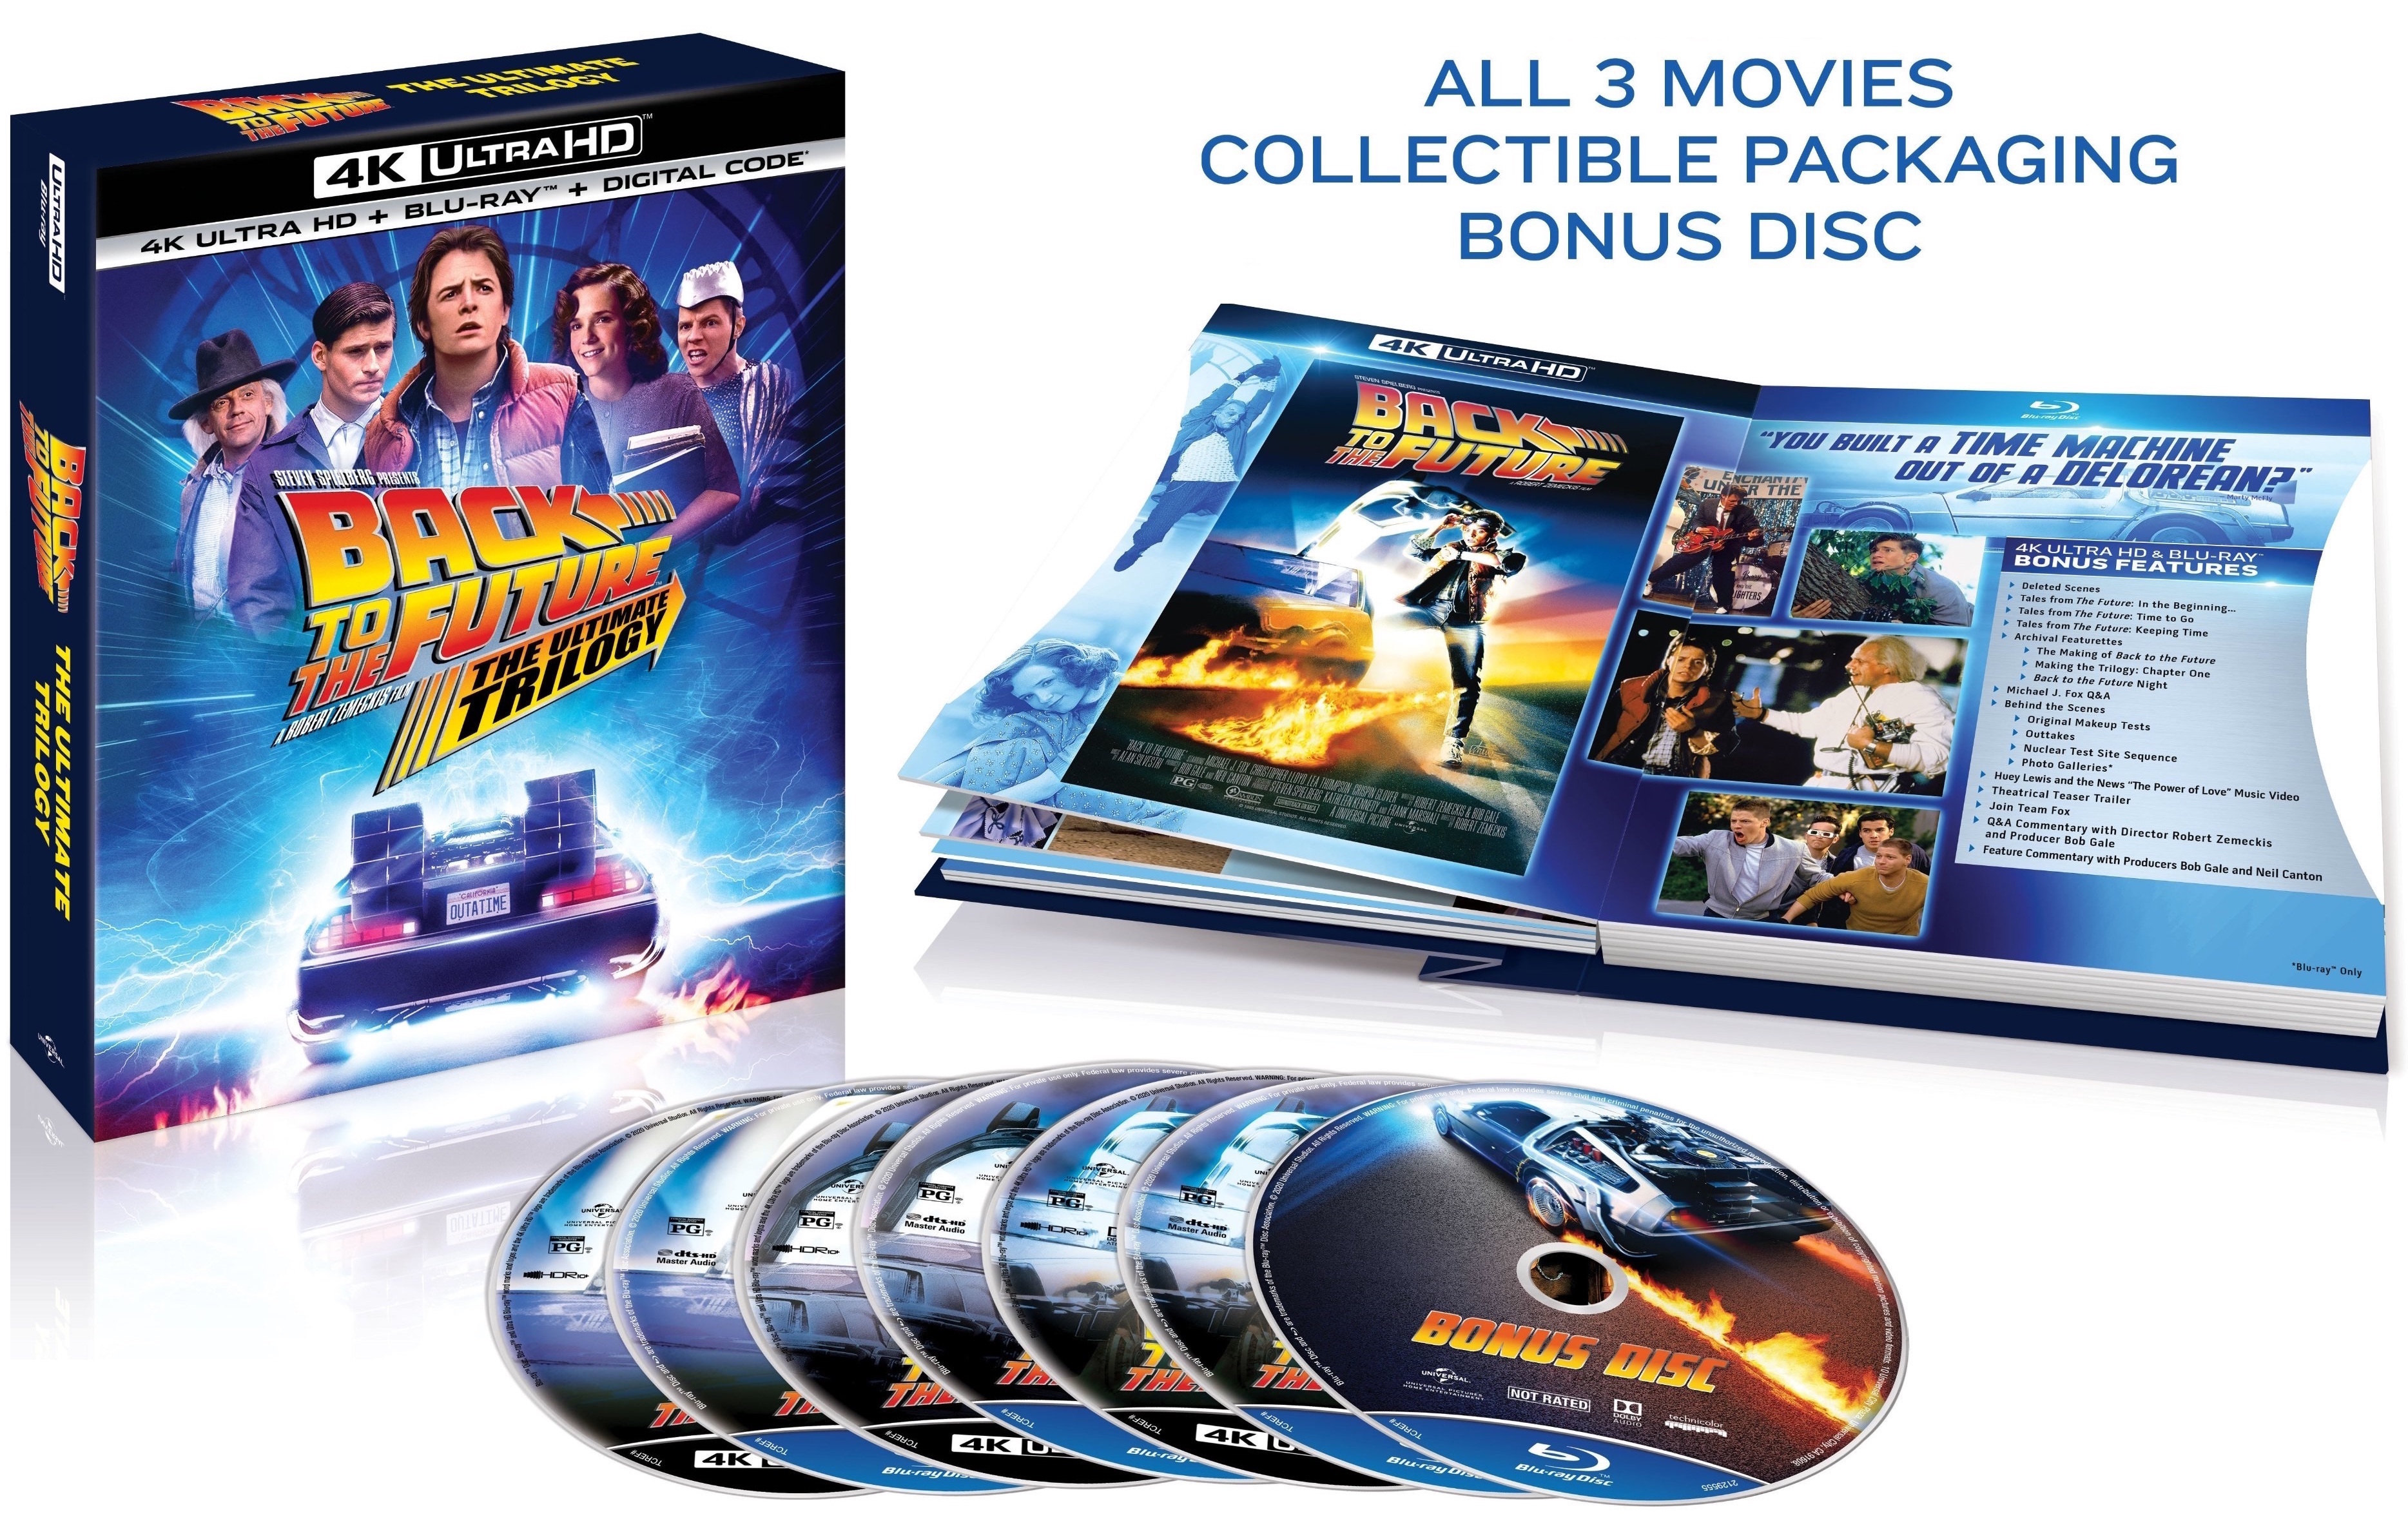 Back To The Future The Ultimate Trilogy 4k Blu Ray Release Date October 20 2020 Digibook